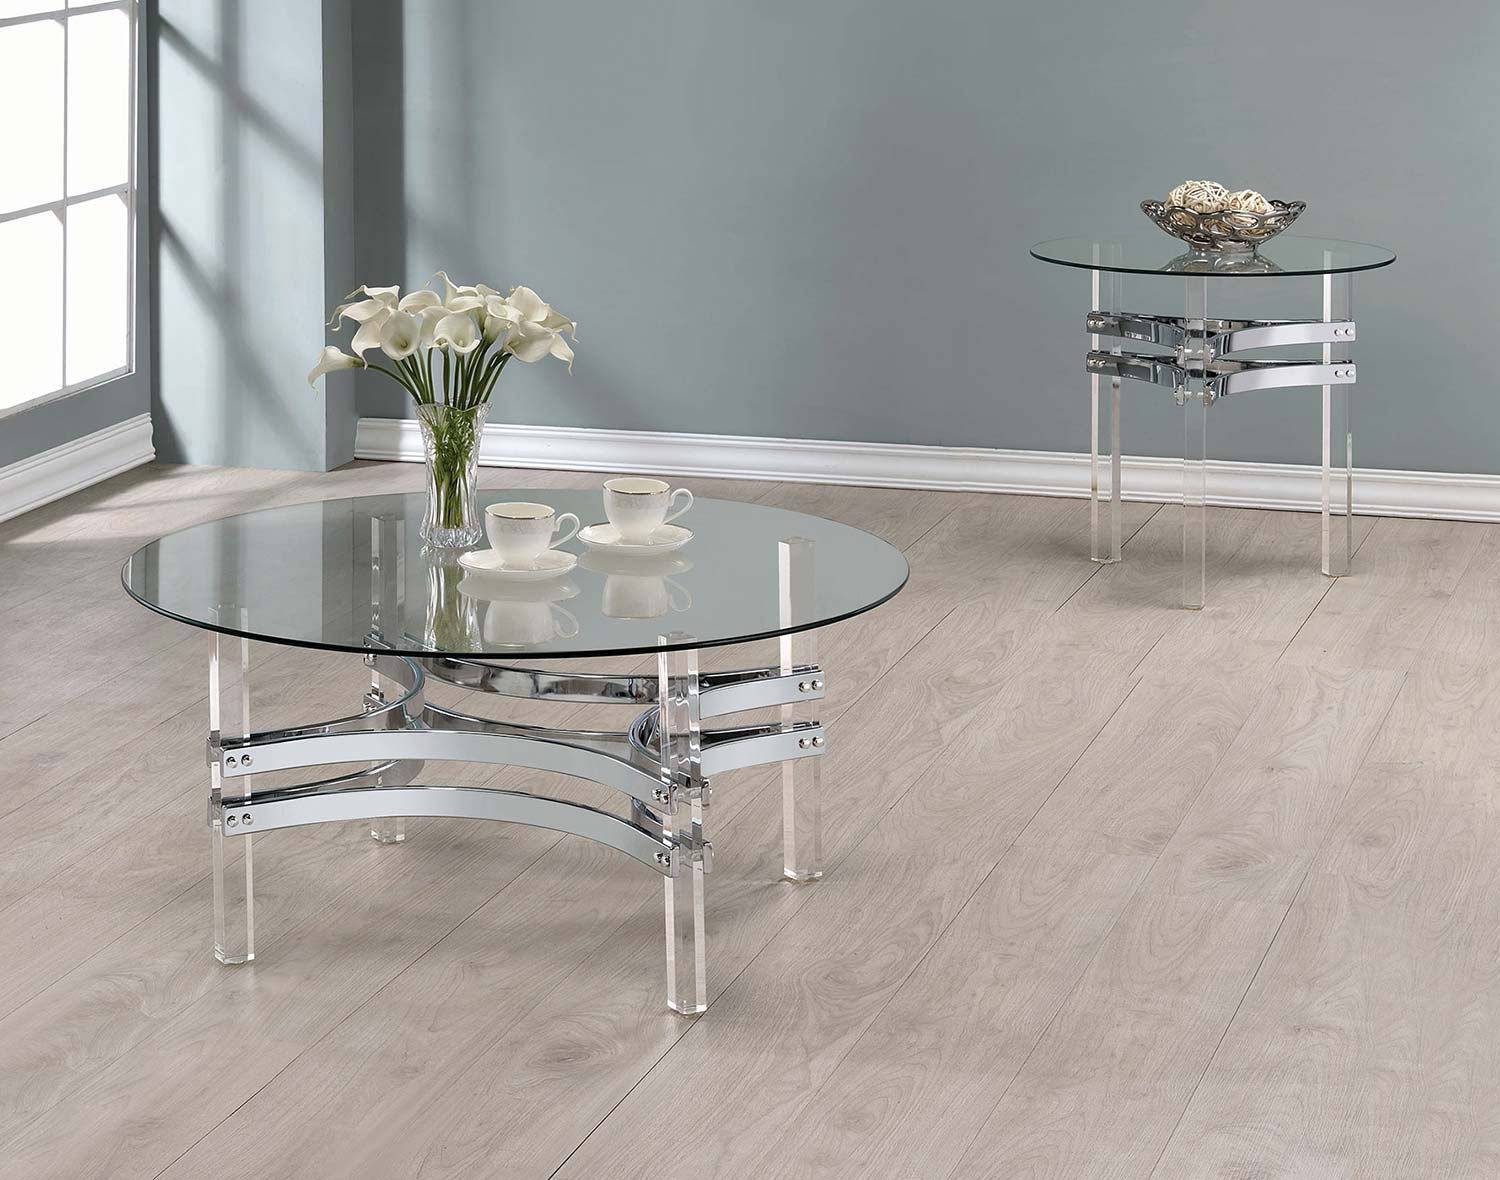 Coaster 720708 Occasional/Coffee Table Set - Chrome/Clear Acrylic